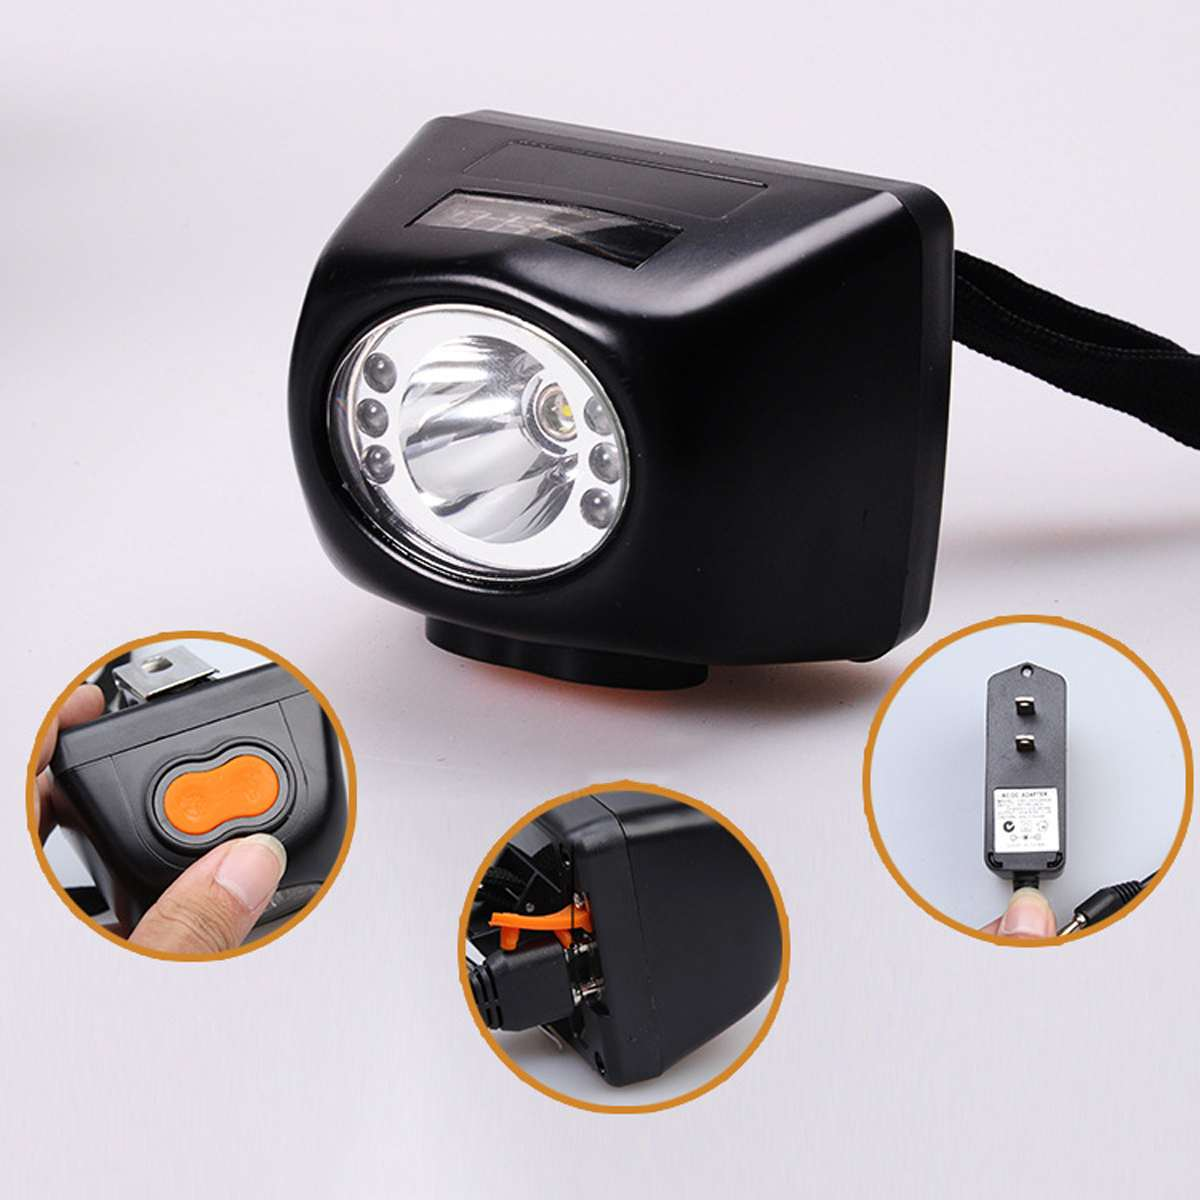 3W 4500LM Black Miners Cordless Power LED Helmet Light Lamp Torch Protective Helmet Part Workplace Safety Protection Supply New